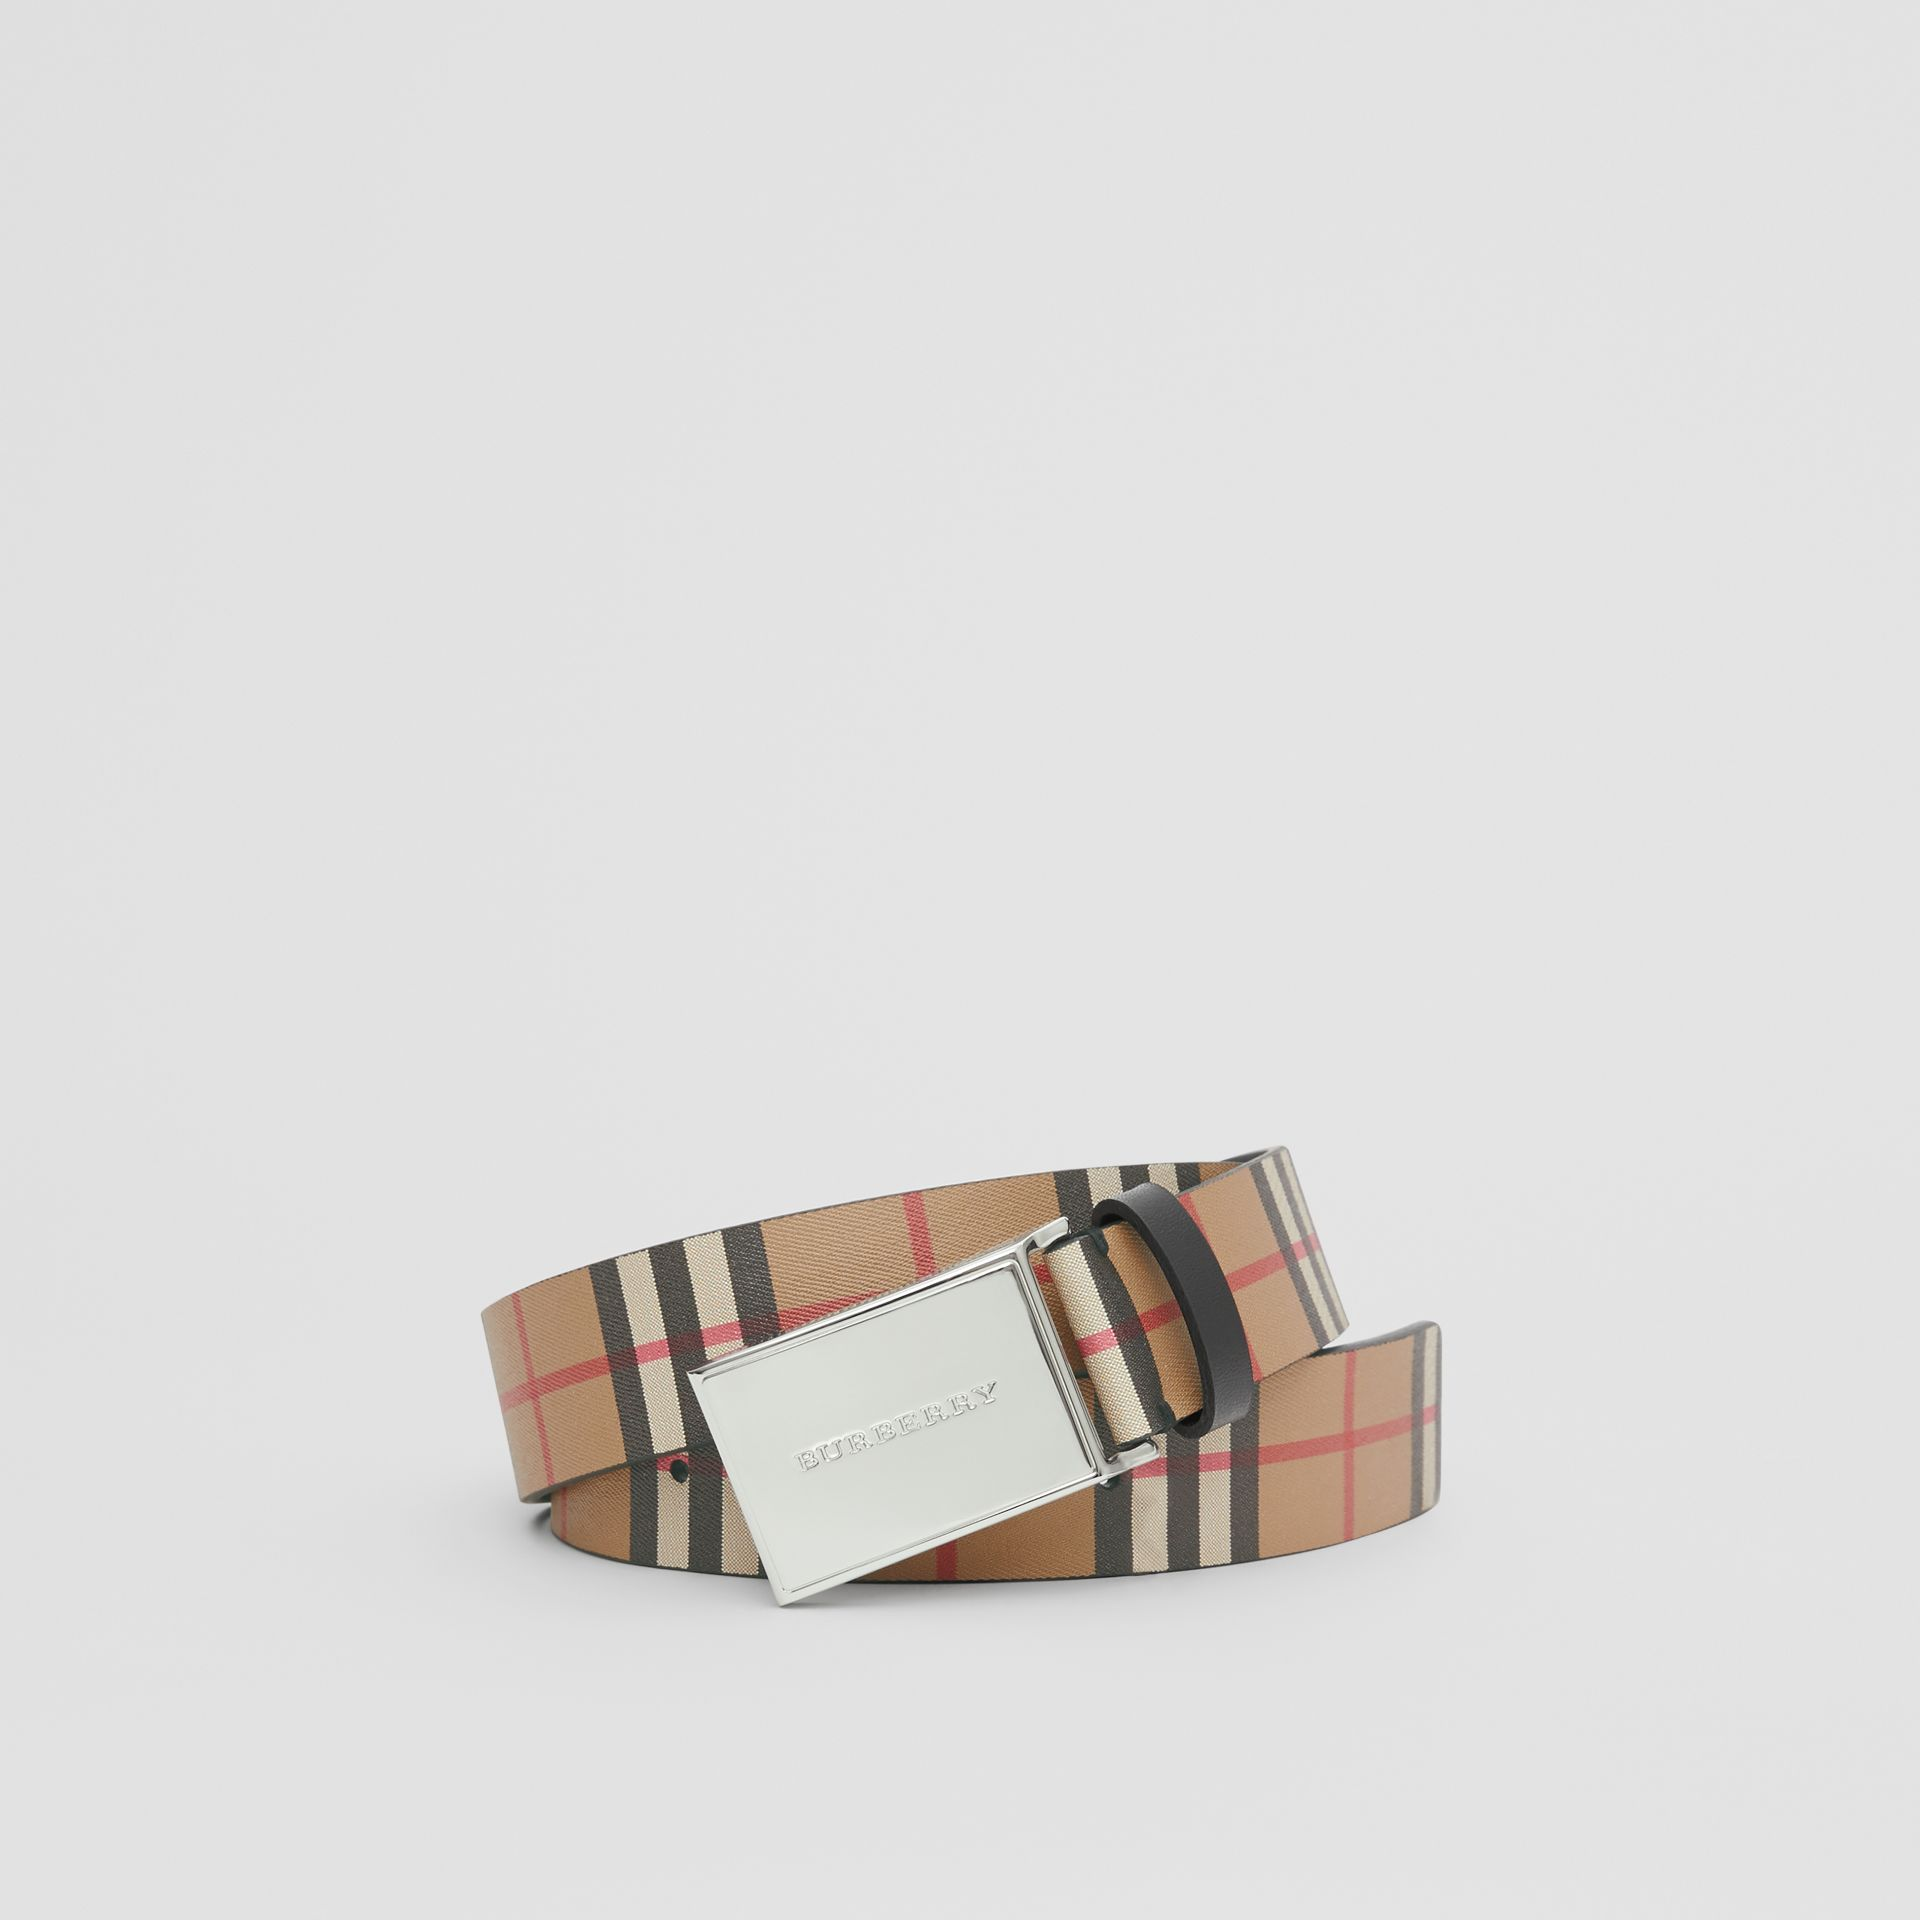 Plaque Buckle Vintage Check Leather Belt in Black - Men | Burberry Australia - gallery image 0